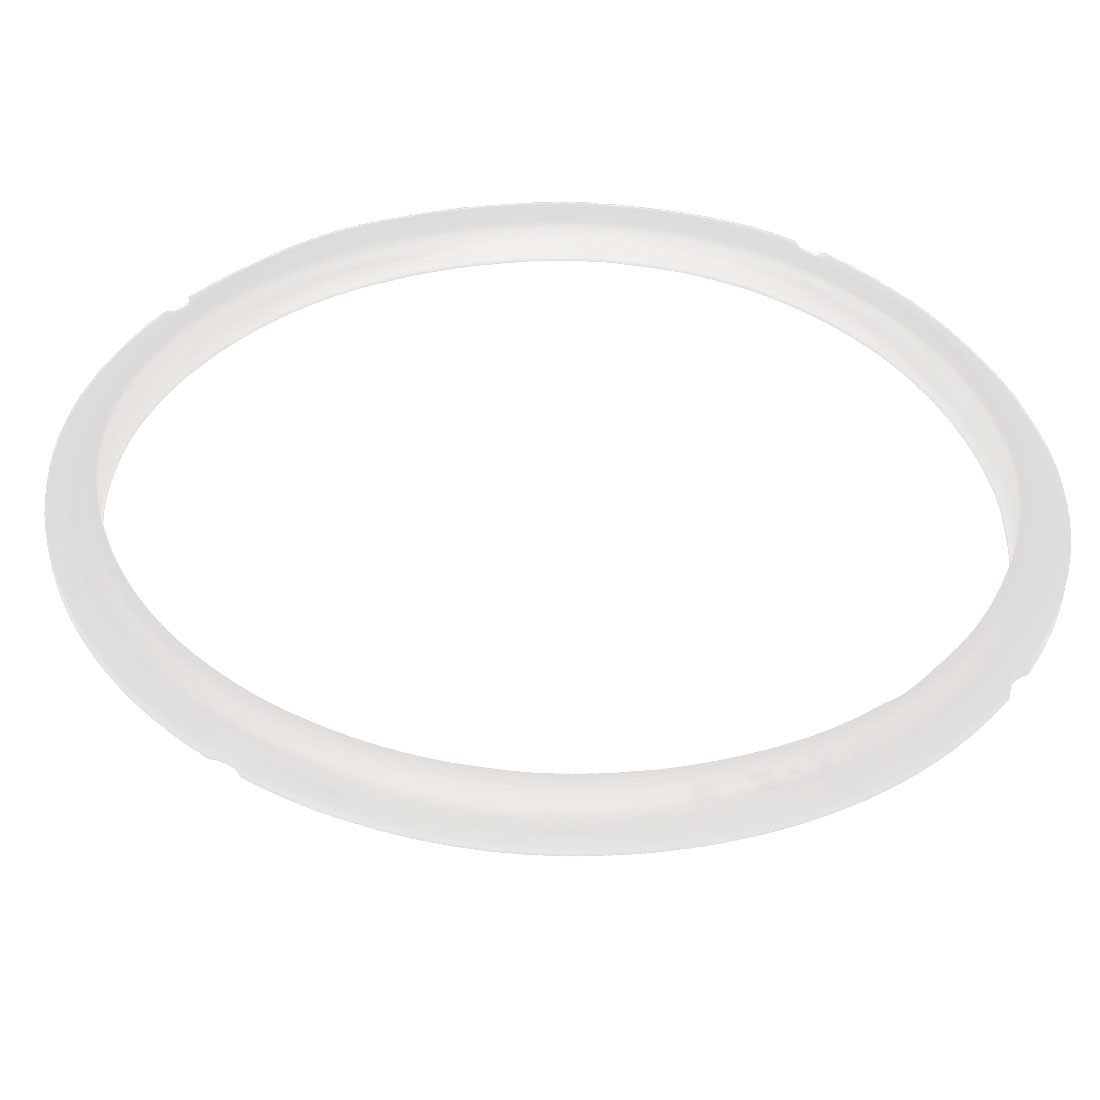 Unique Bargains Silicone Gasket Sealing Ring Replacement for 7-8L Pressure Cooker